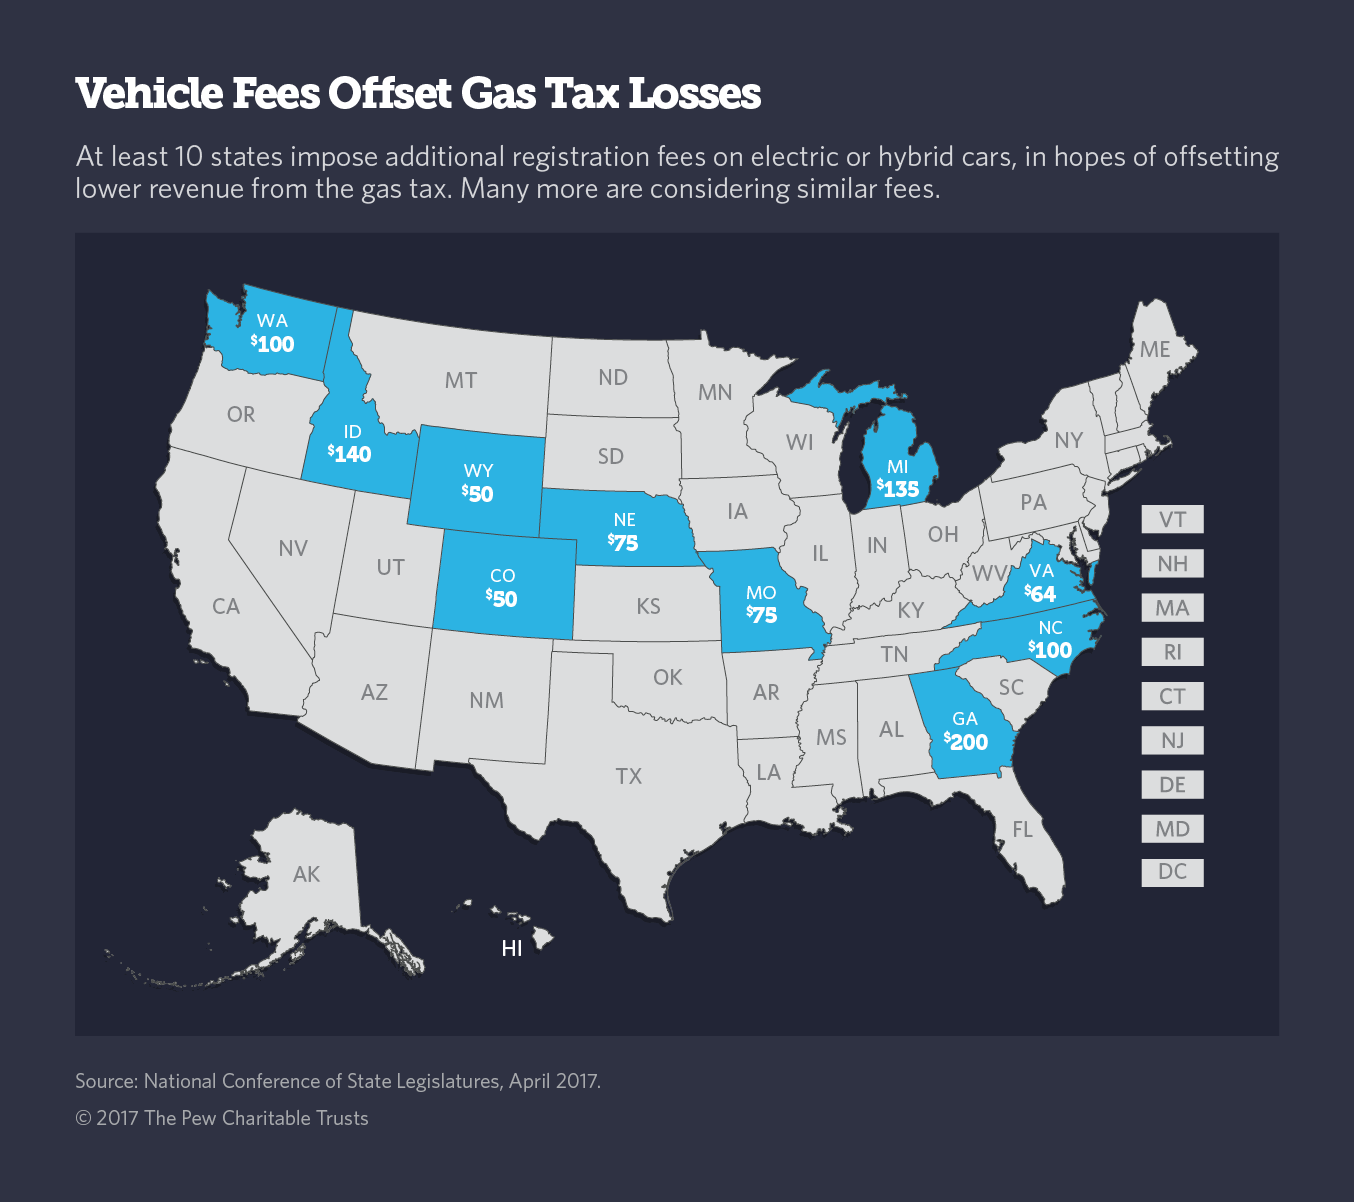 Amid Gas-Tax Revenue Decline, New Fees On Fuel-Efficient Cars